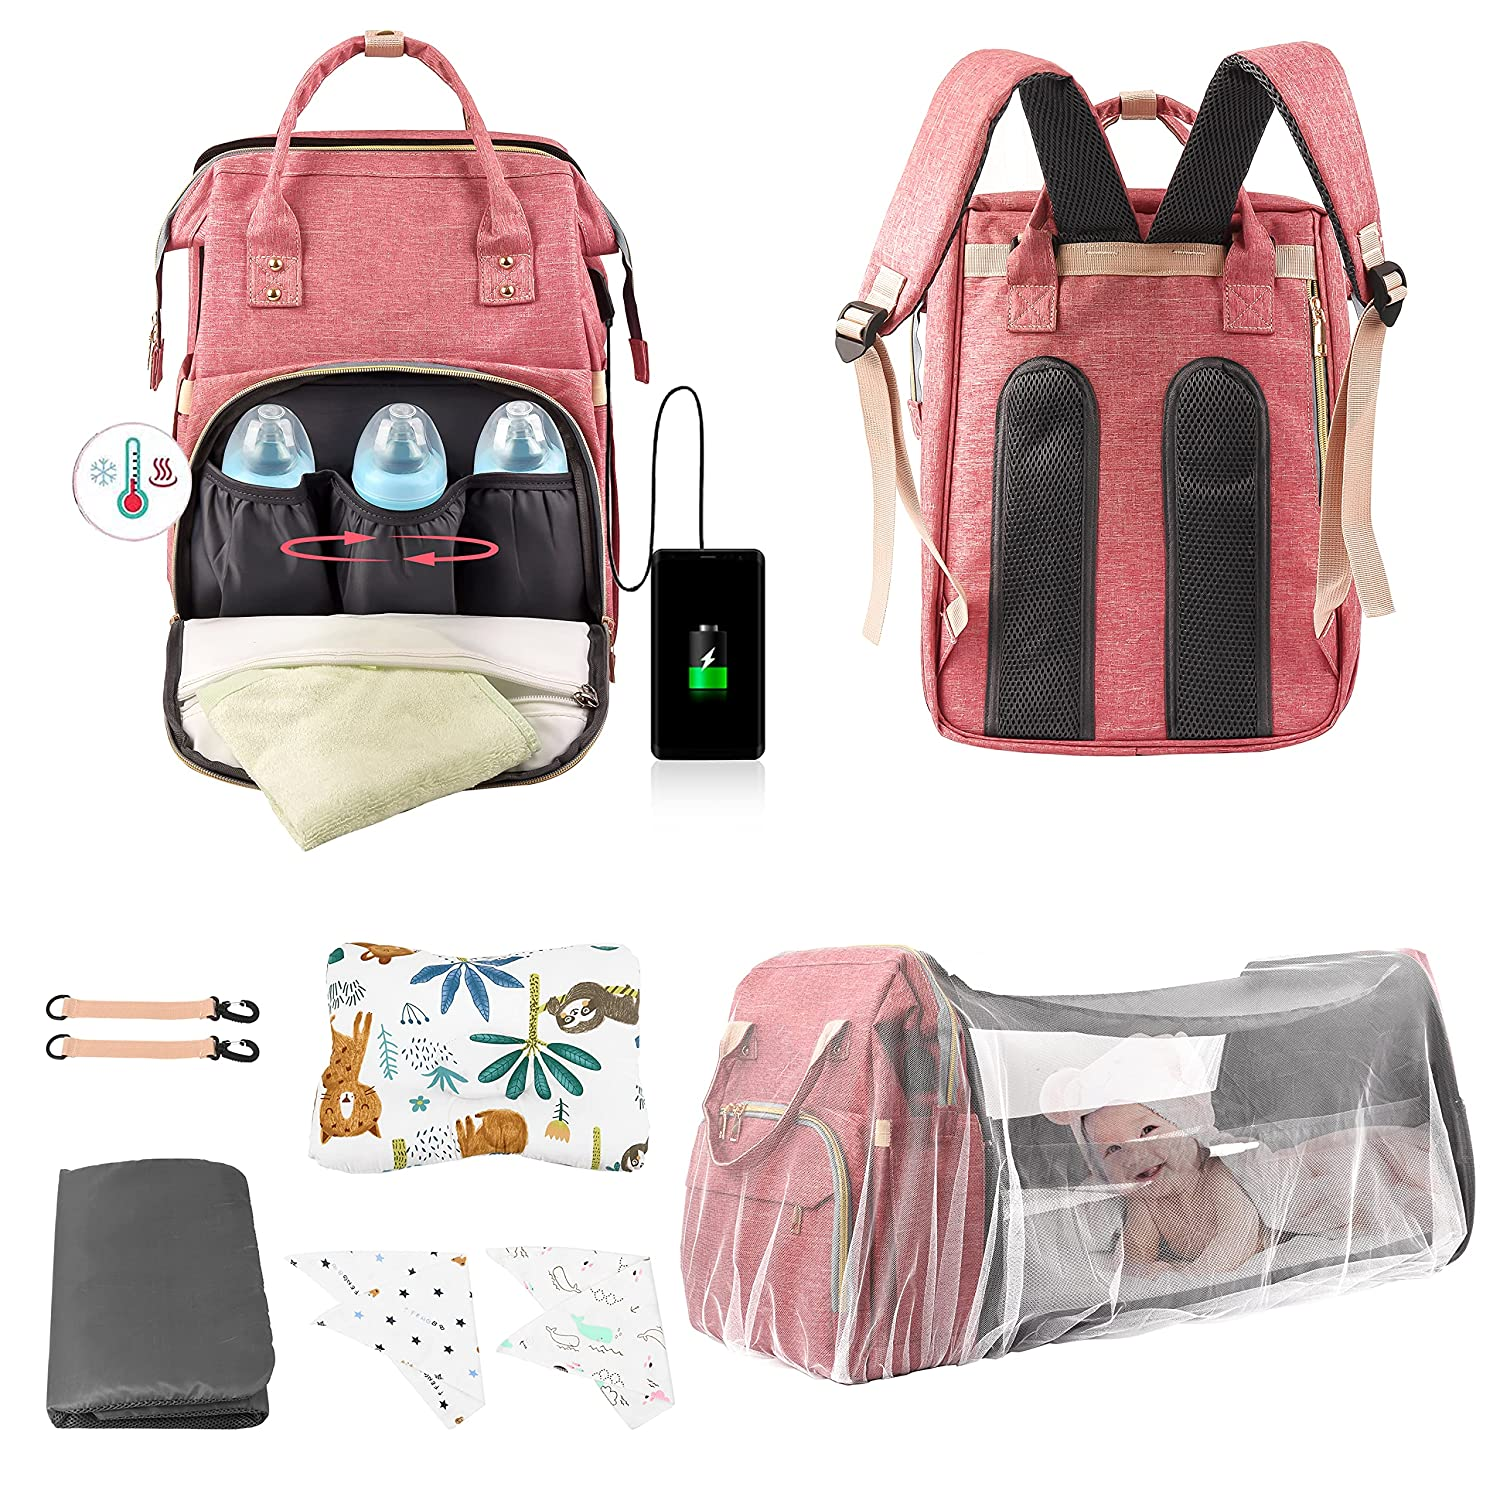 9in1 Diaper Bag with Changing Station, AKSHITHAA Waterproof Diaper Baby Bag for Boy Girl, Foldable Bassinet Bed, Unique Sunshade, Soft Baby Pillow 2X) Bib and USB Charge Port (Pink)